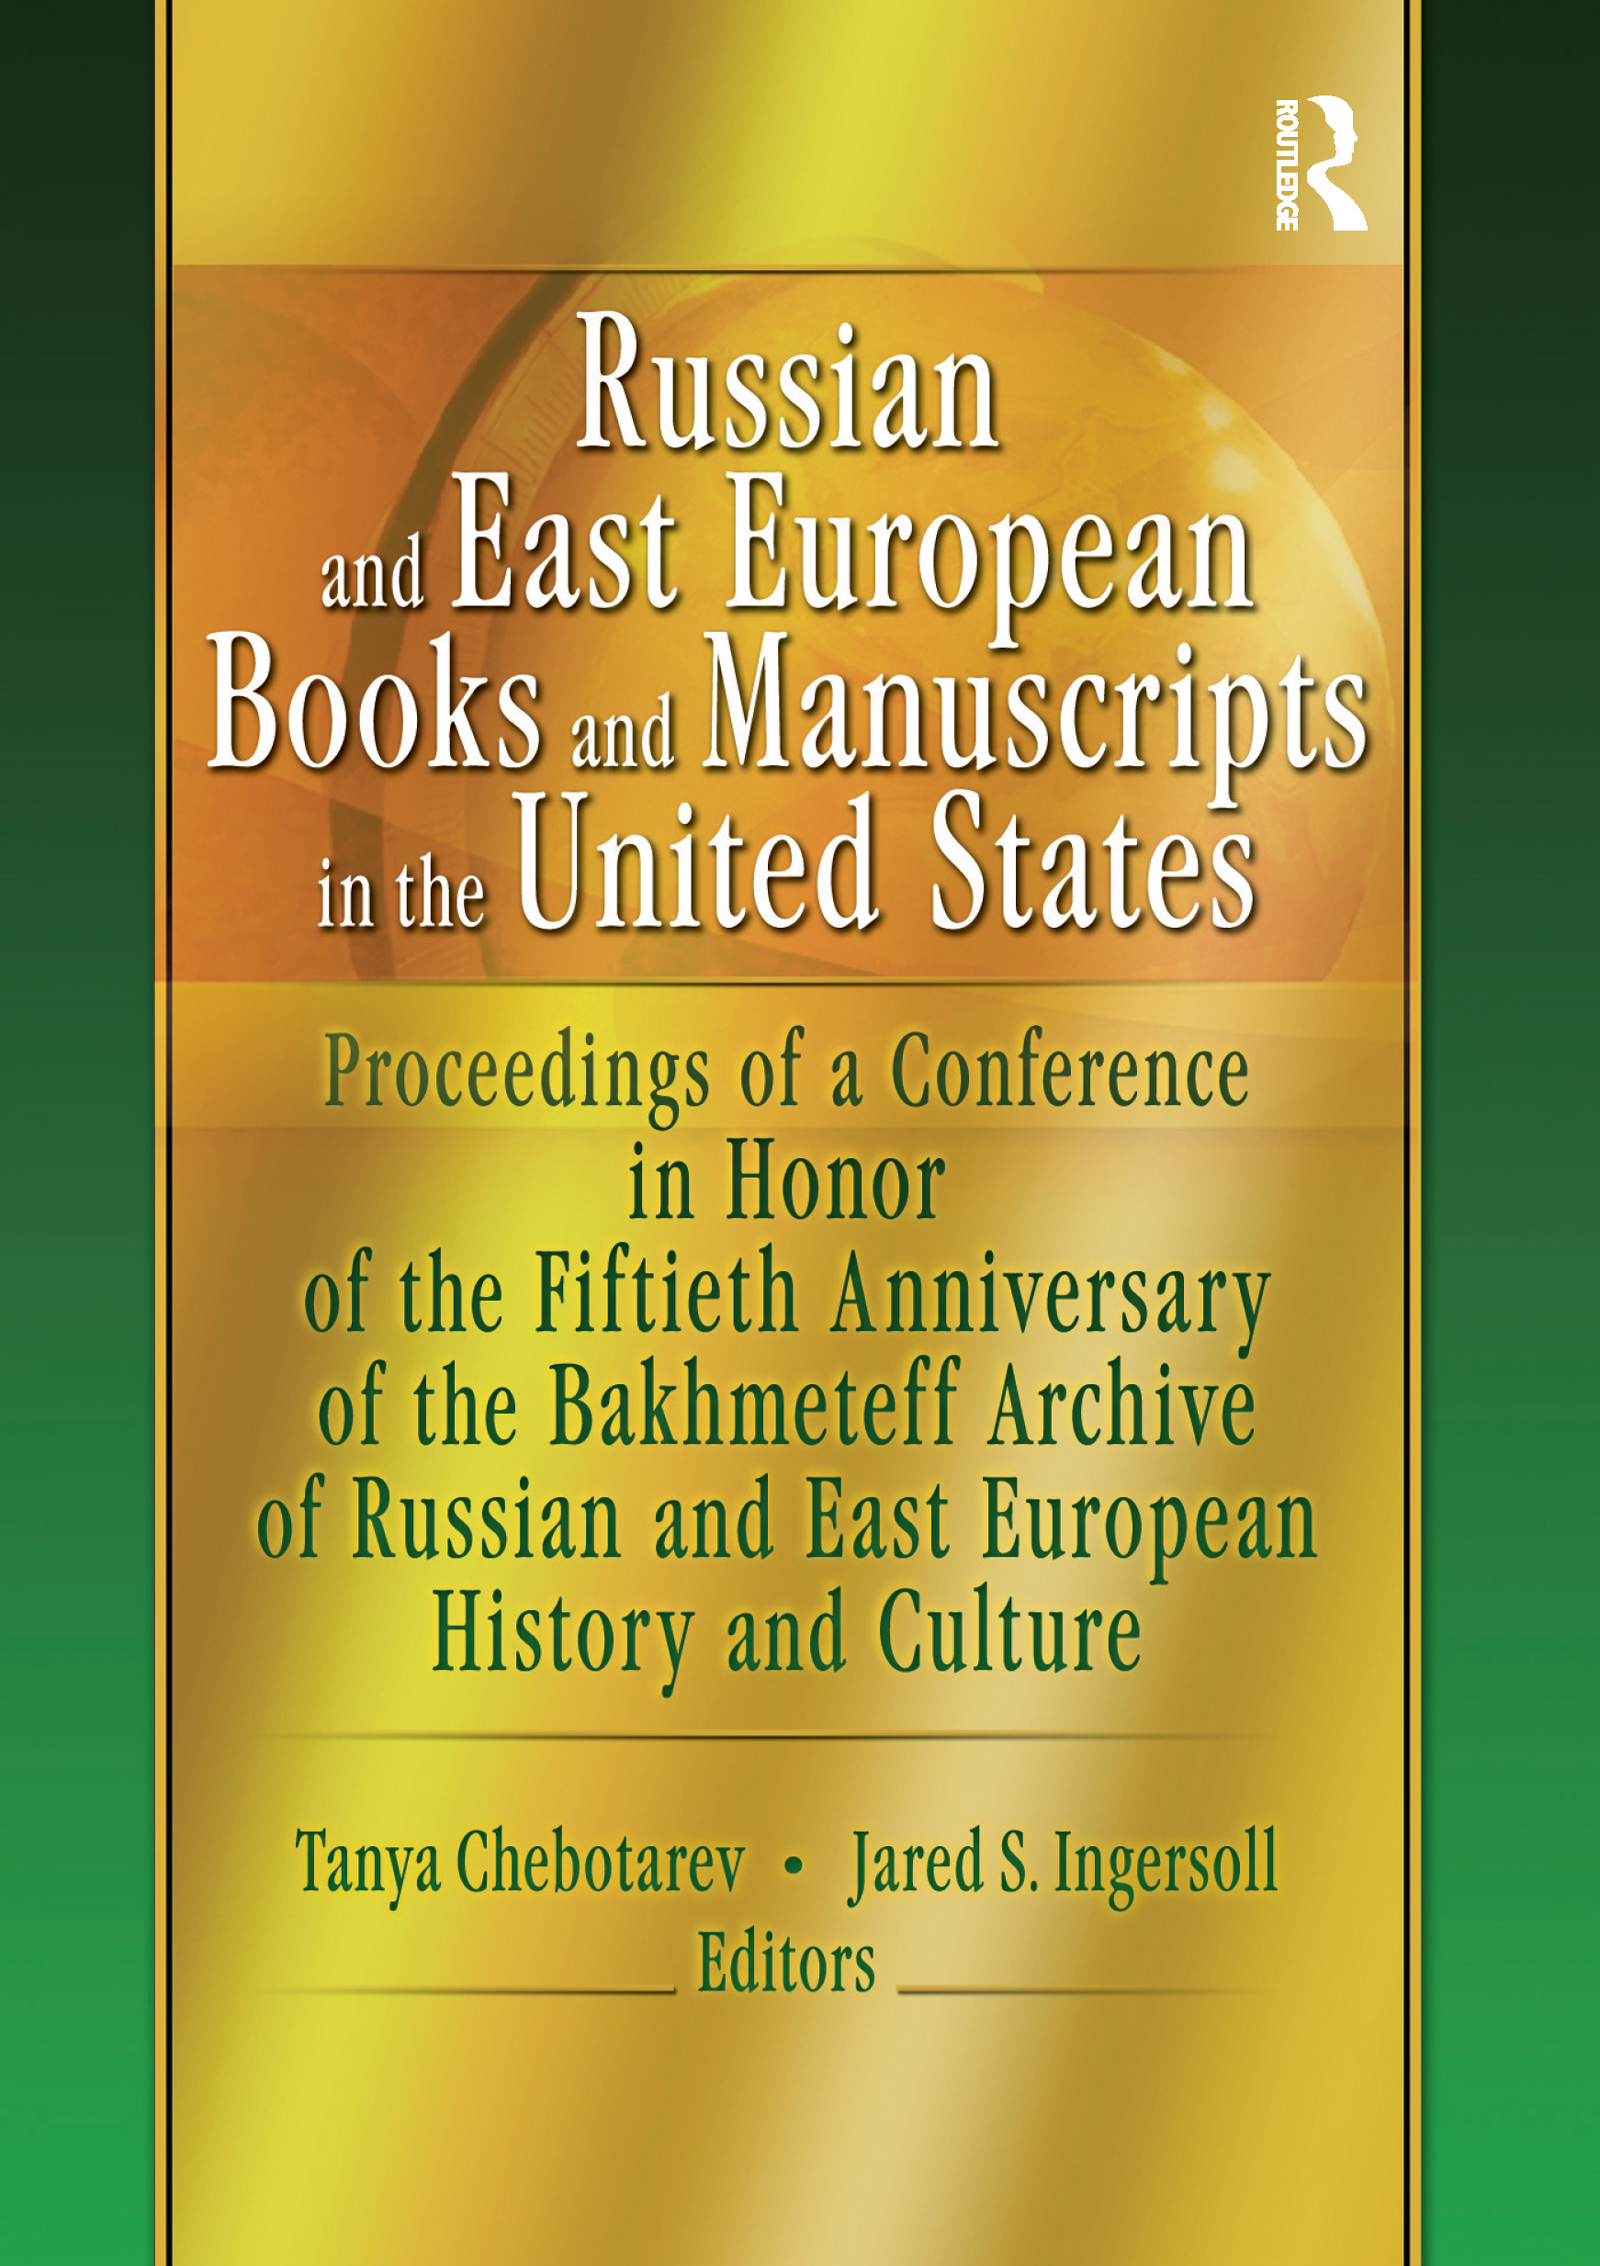 Russian and East European Books and Manuscripts in the United States: Proceedings of a Conference in Honor of the Fiftieth Anniversary of the Bakhmeteff Archive of Russia, 1st Edition (Paperback) book cover